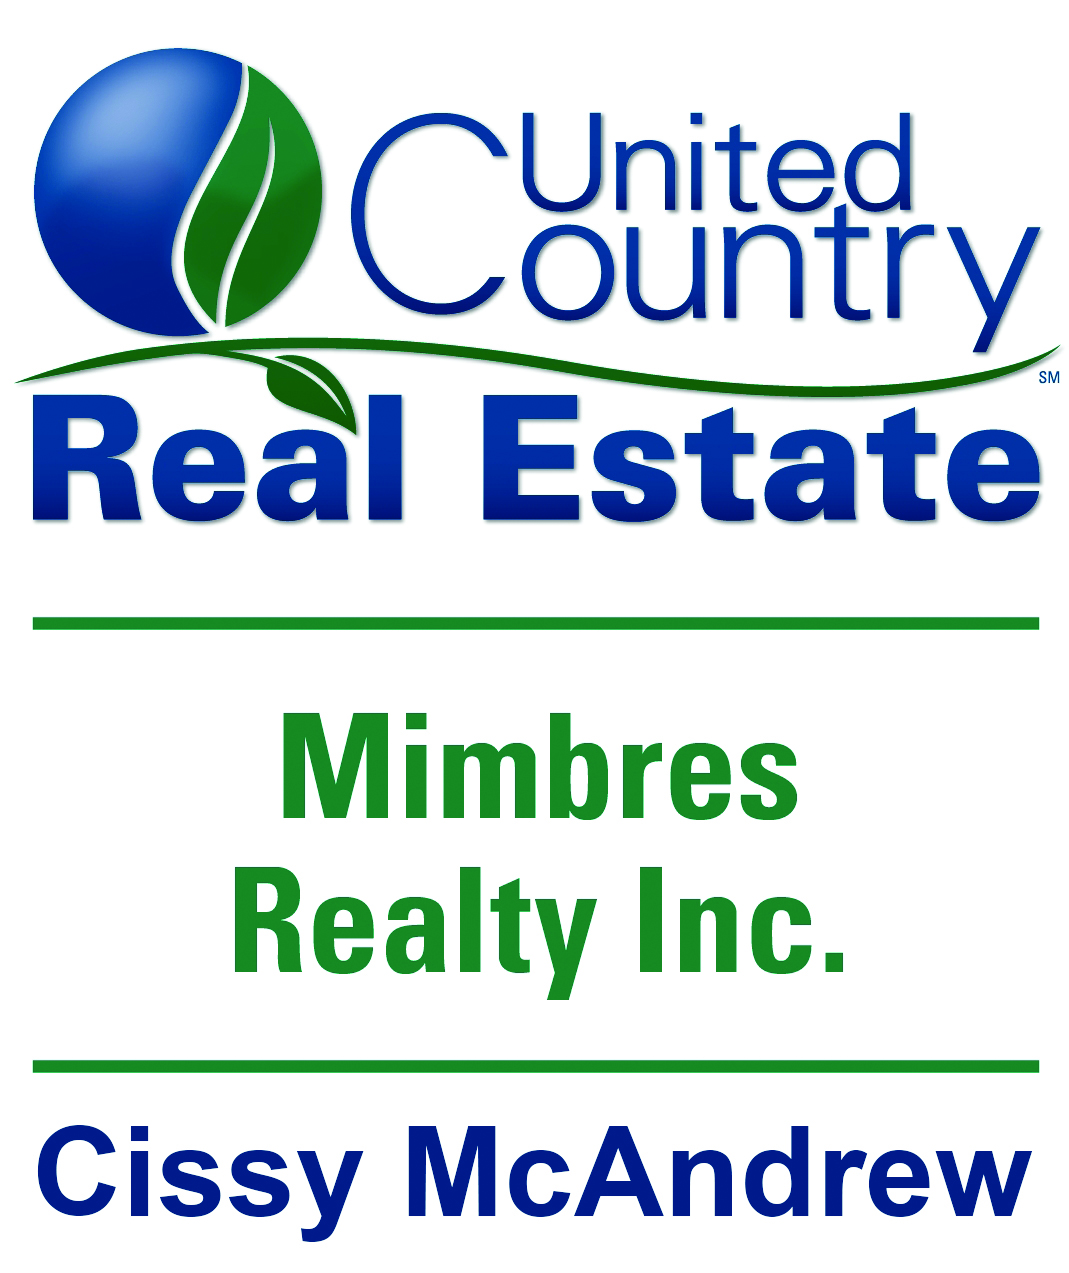 Mimbres Realty Inc 2014 SQUARE.jpg